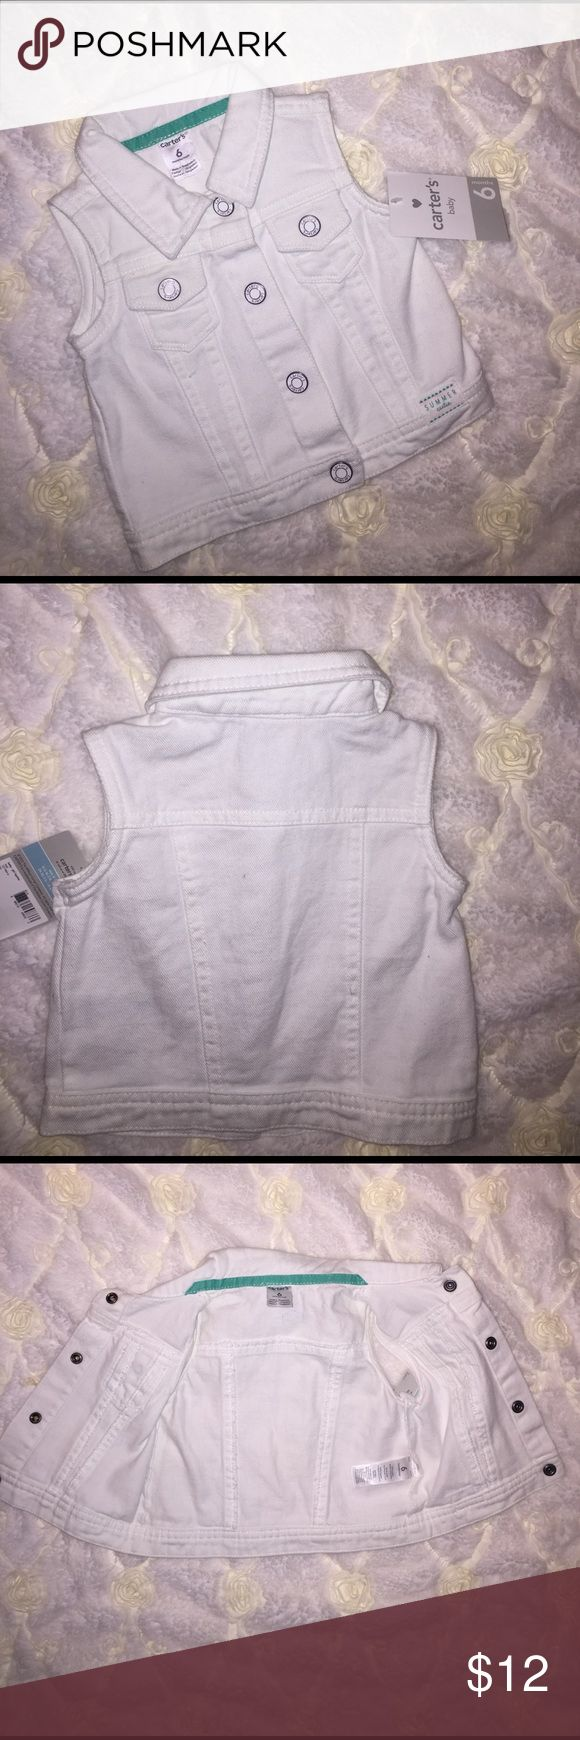 💛BRAND NEW💛 Baby Girl White Denim Vest *NWT* Baby Girl White Denim Vest!!! This adorable vest will be perfect for your little fashionista!!! In BRAND NEW CONDITION w/ original tags!!! Don't forget to BUNDLE & SAVE!!! Carter's Jackets & Coats Vests